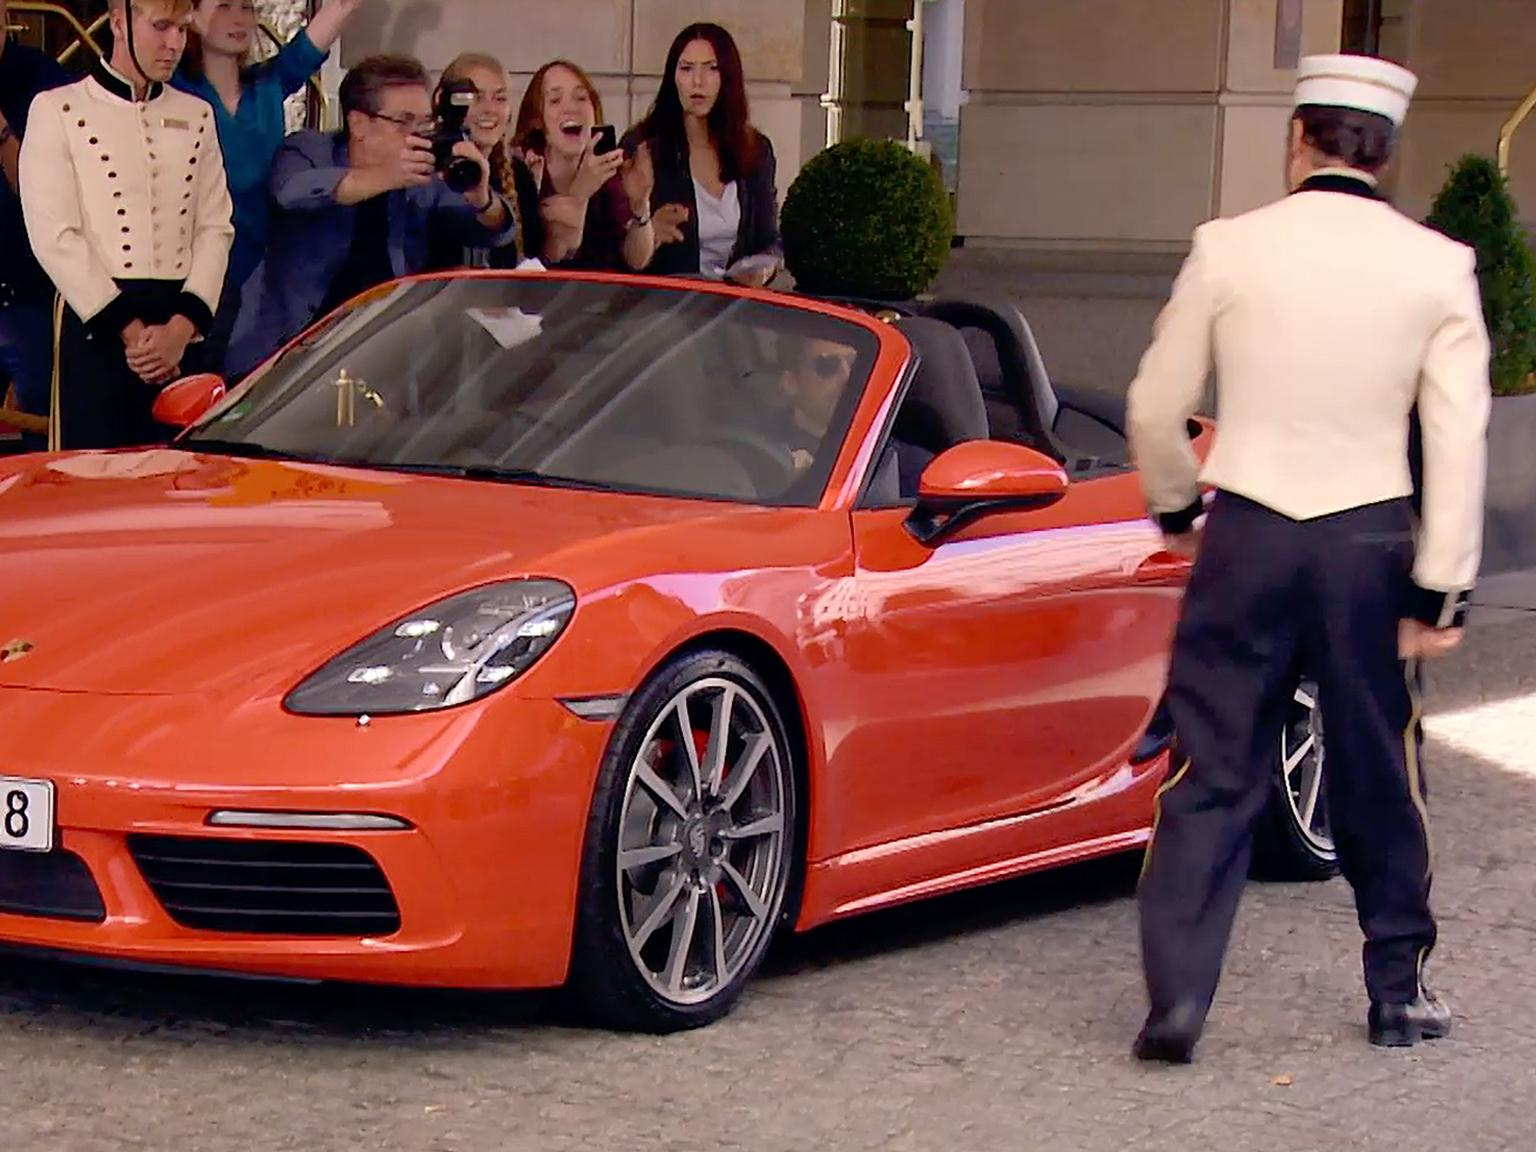 Thumbnail for Patrick Dempsey's way of arriving at a hotel driveway